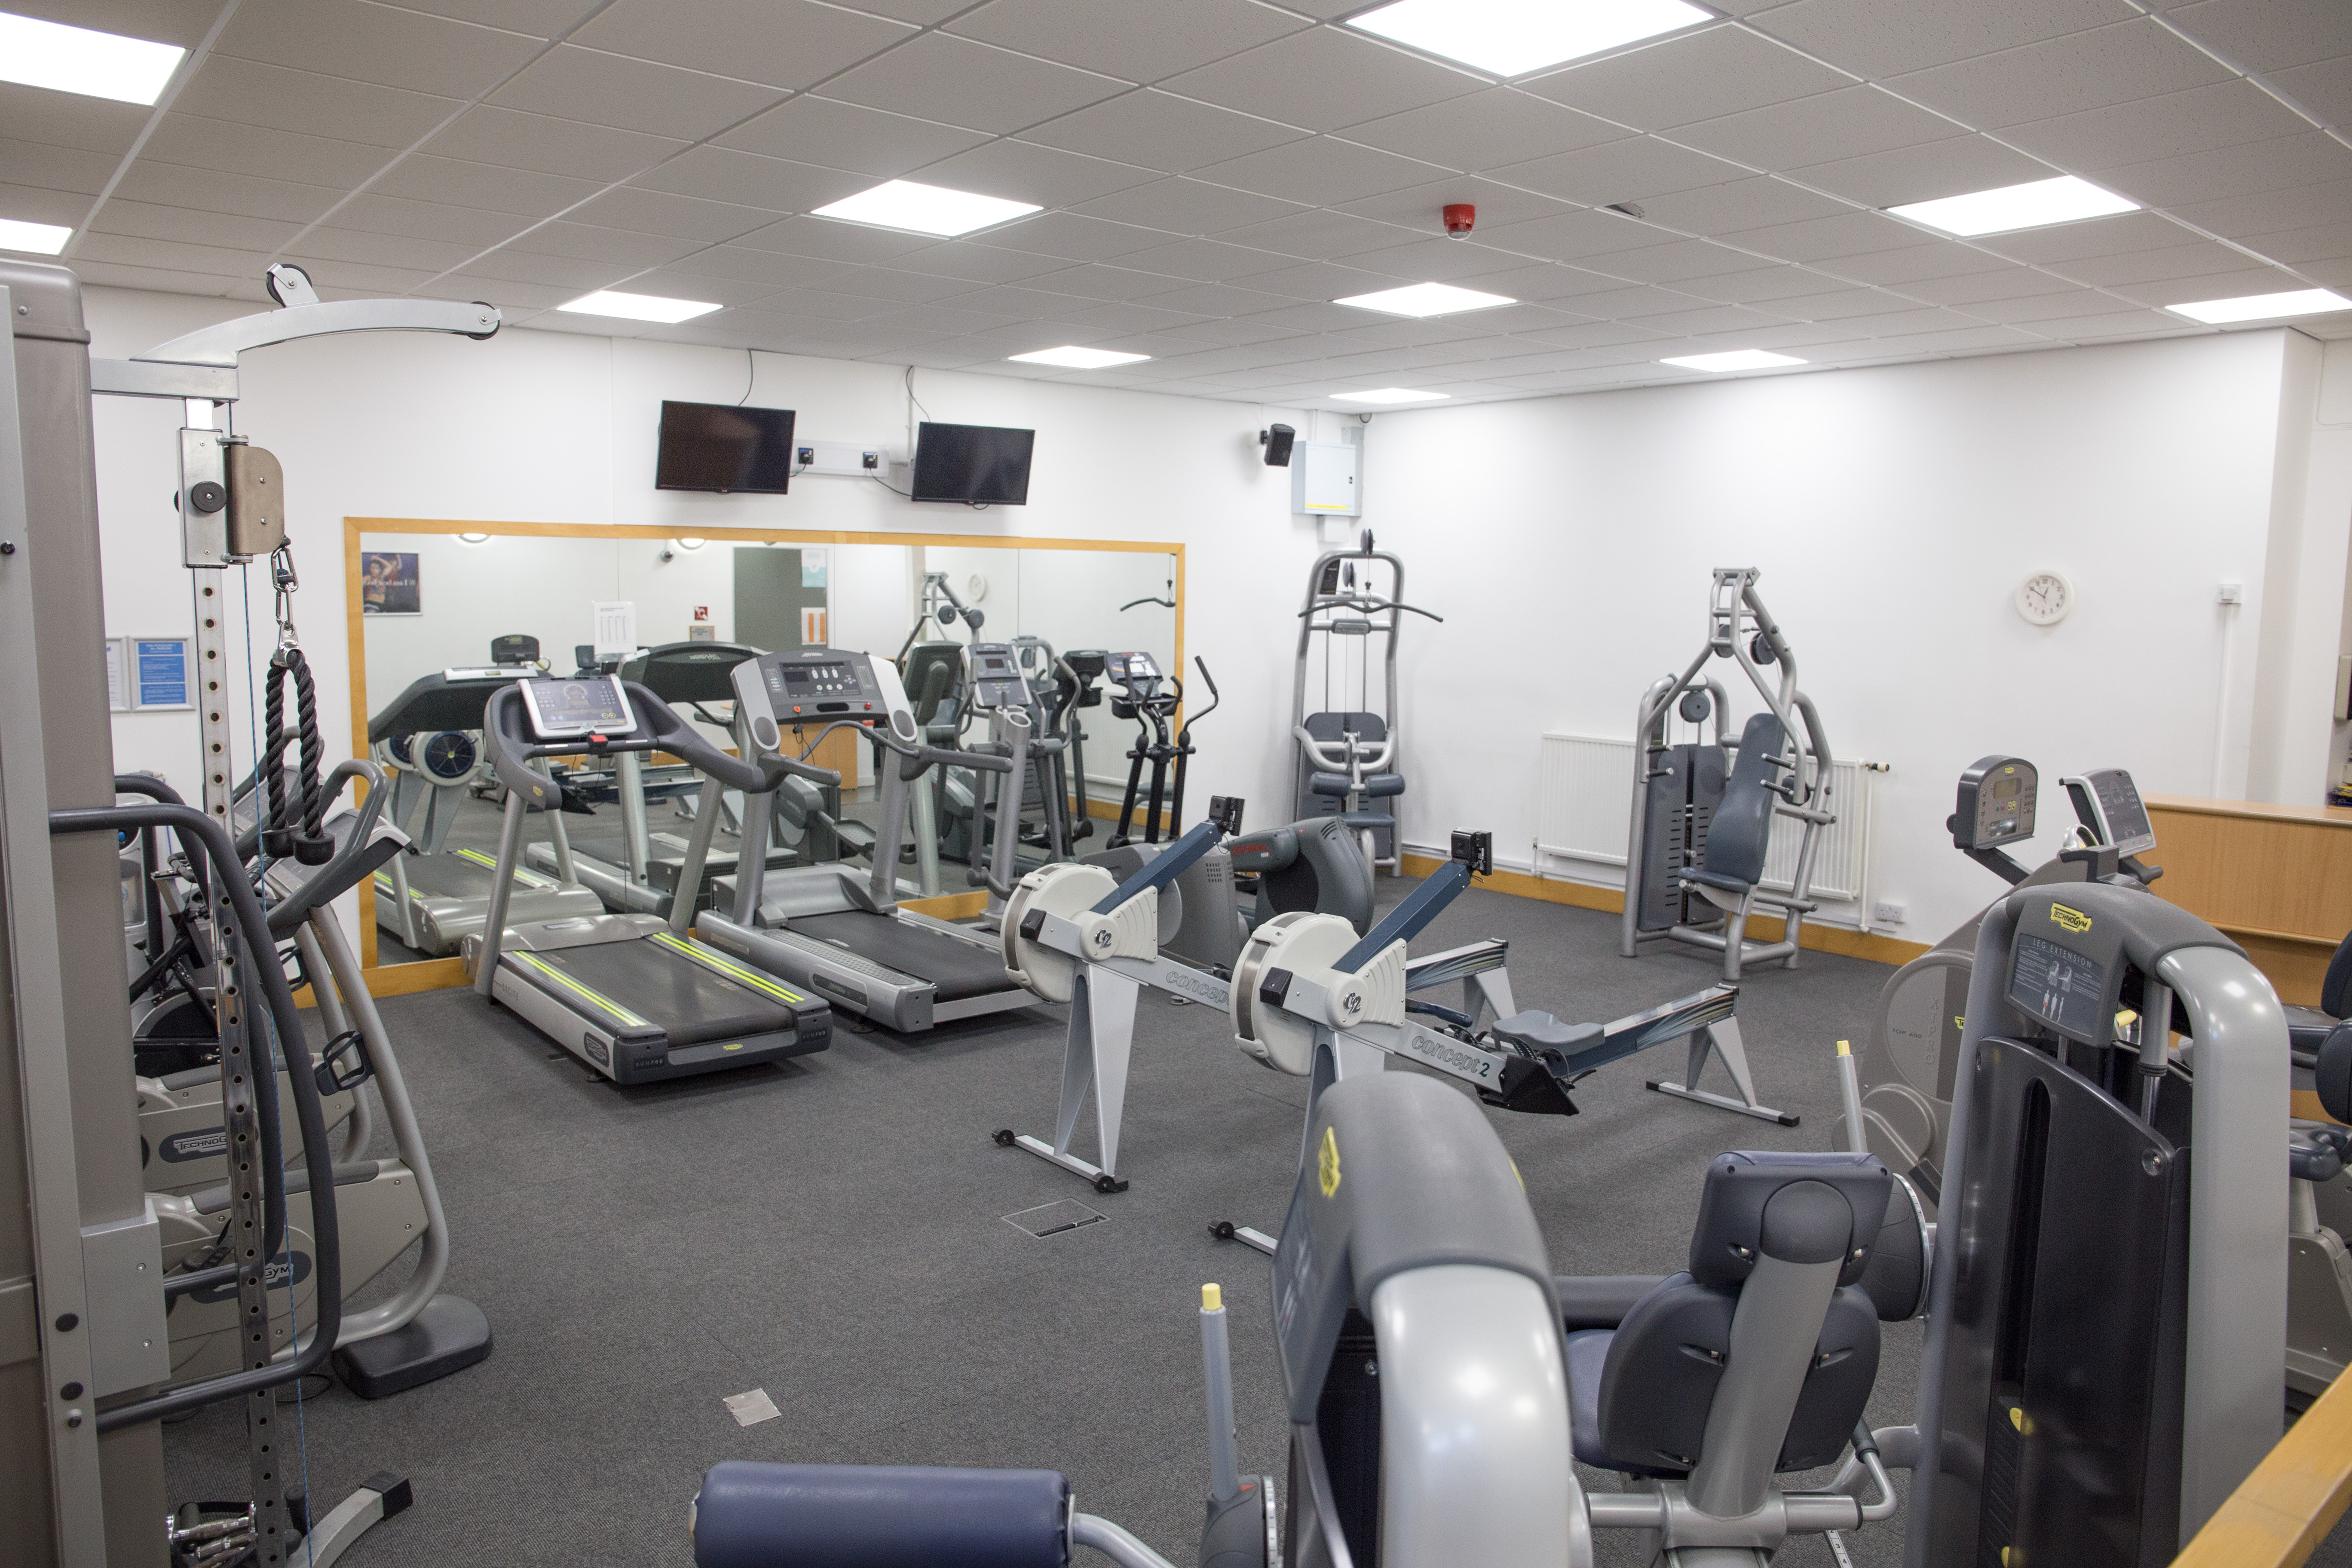 Gym hire at Chesterfield College